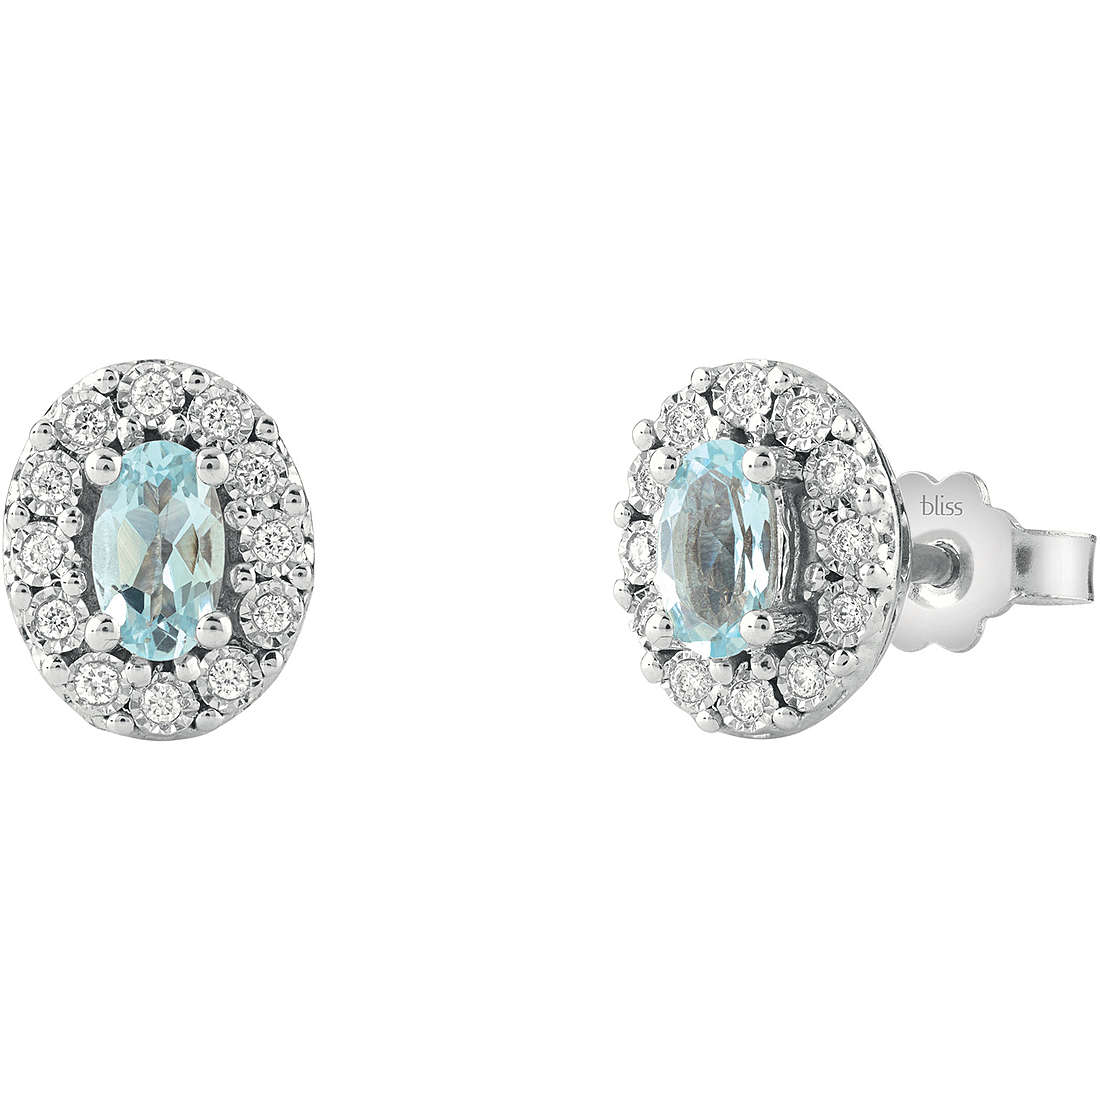 Bliss earrings in white gold with diamonds and aquamarine stone 20086202